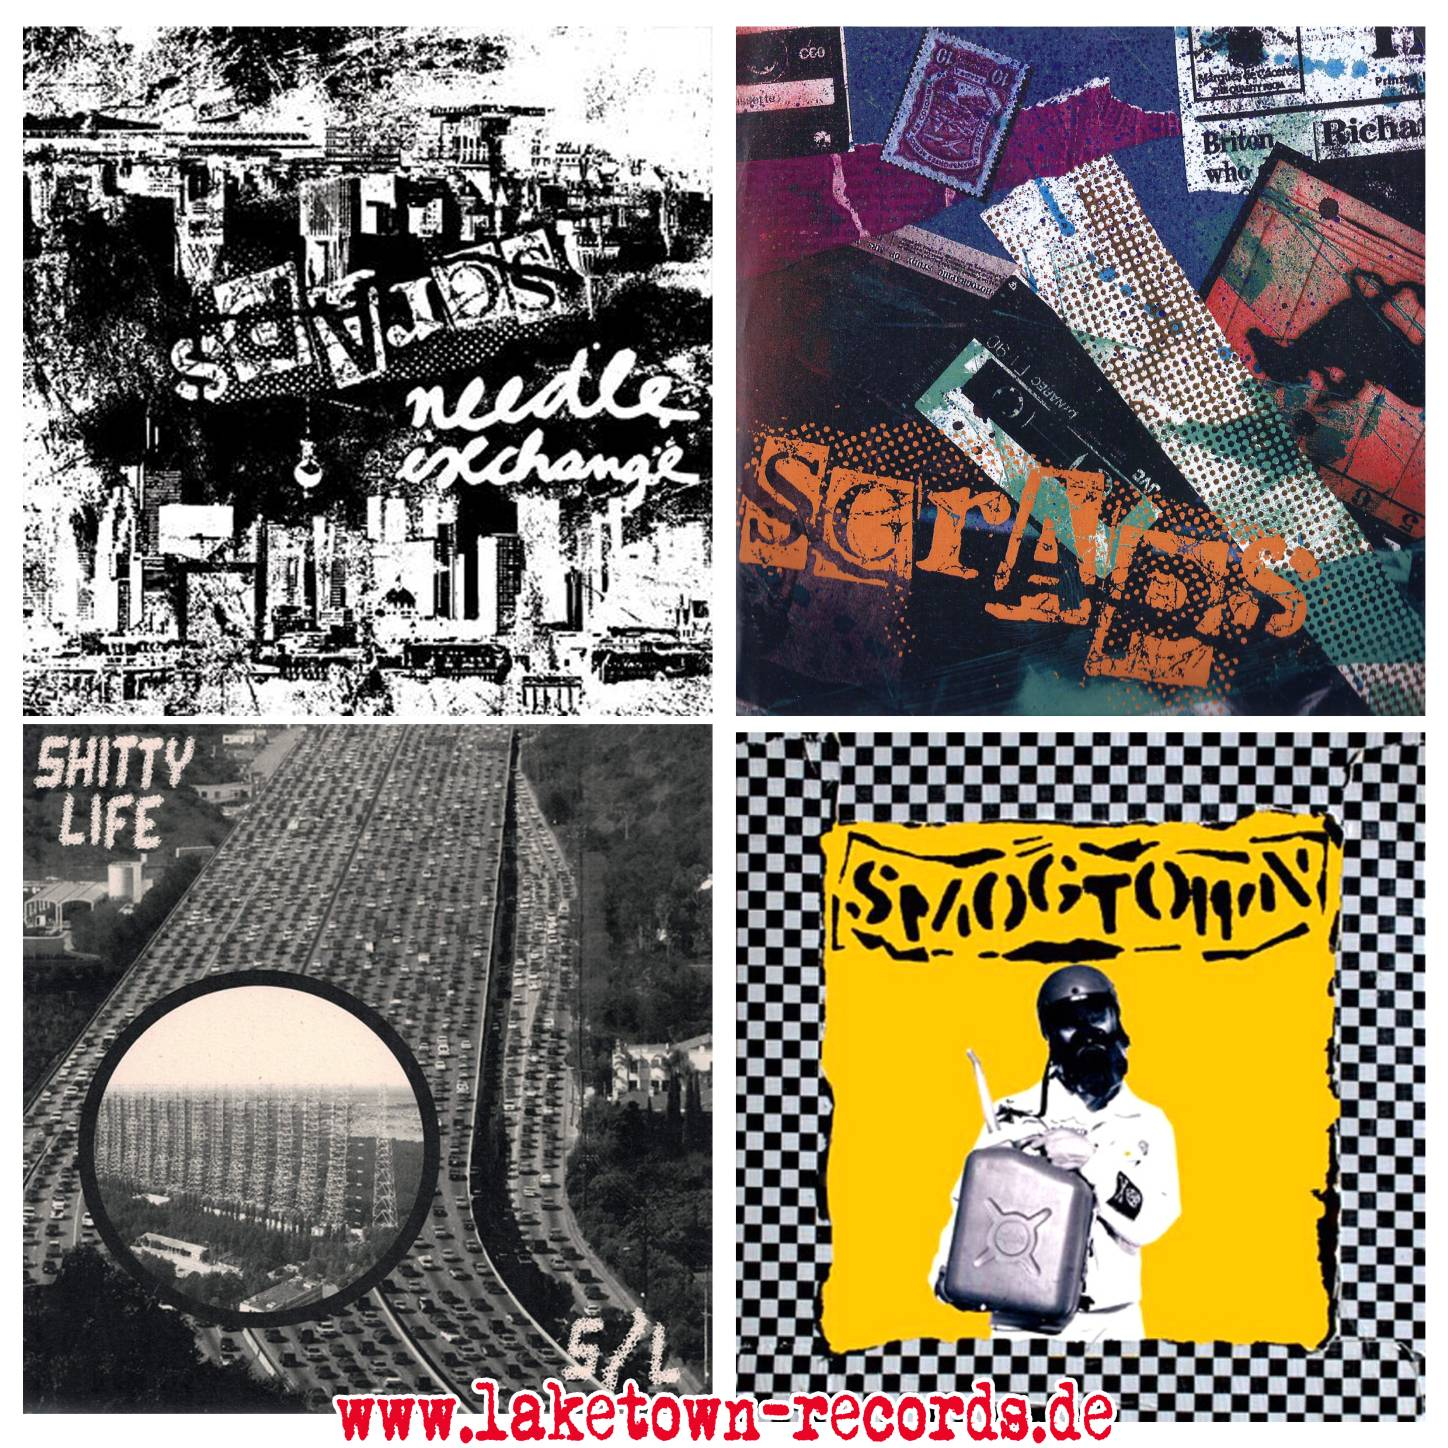 "SHITTY LIFE / NEEDLE EXCHANGE (SPLIT 7"") -  SCRAPS (7"") - SHITTY LIFE (7"") - SMOGTOWN (7"")"